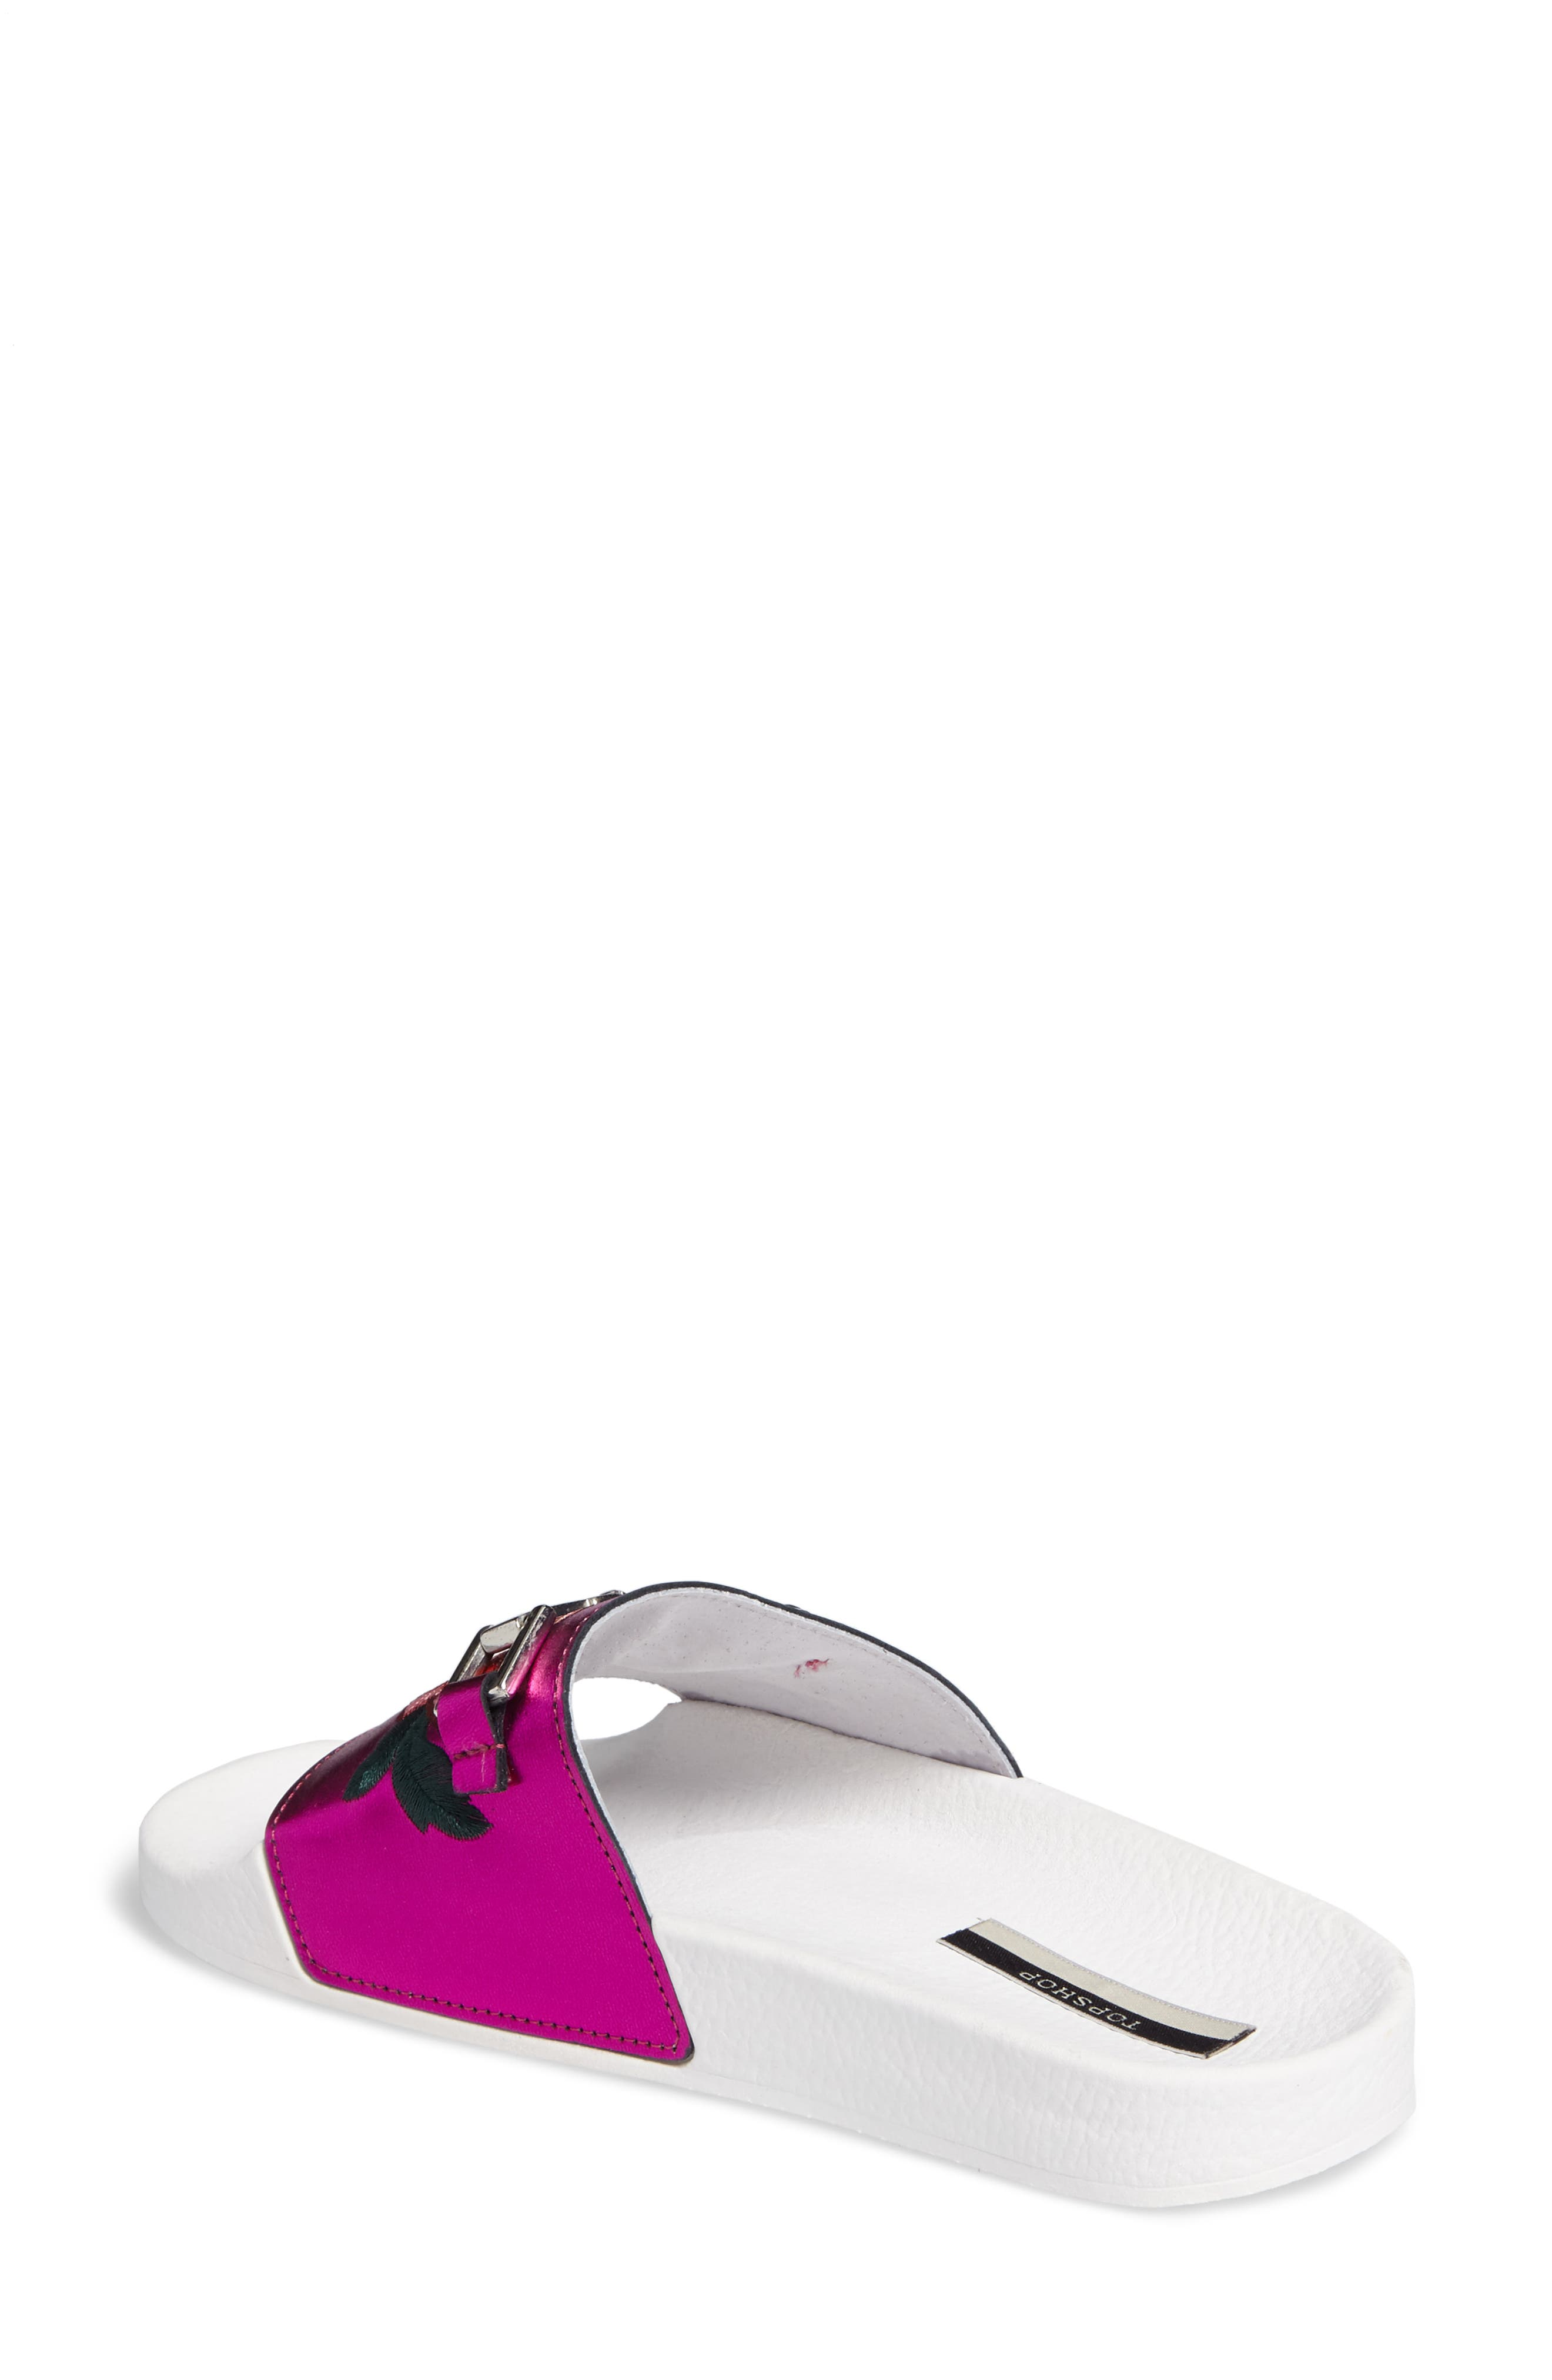 Alternate Image 2  - Topshop Fierce Embroidered Slide Sandal (Women)